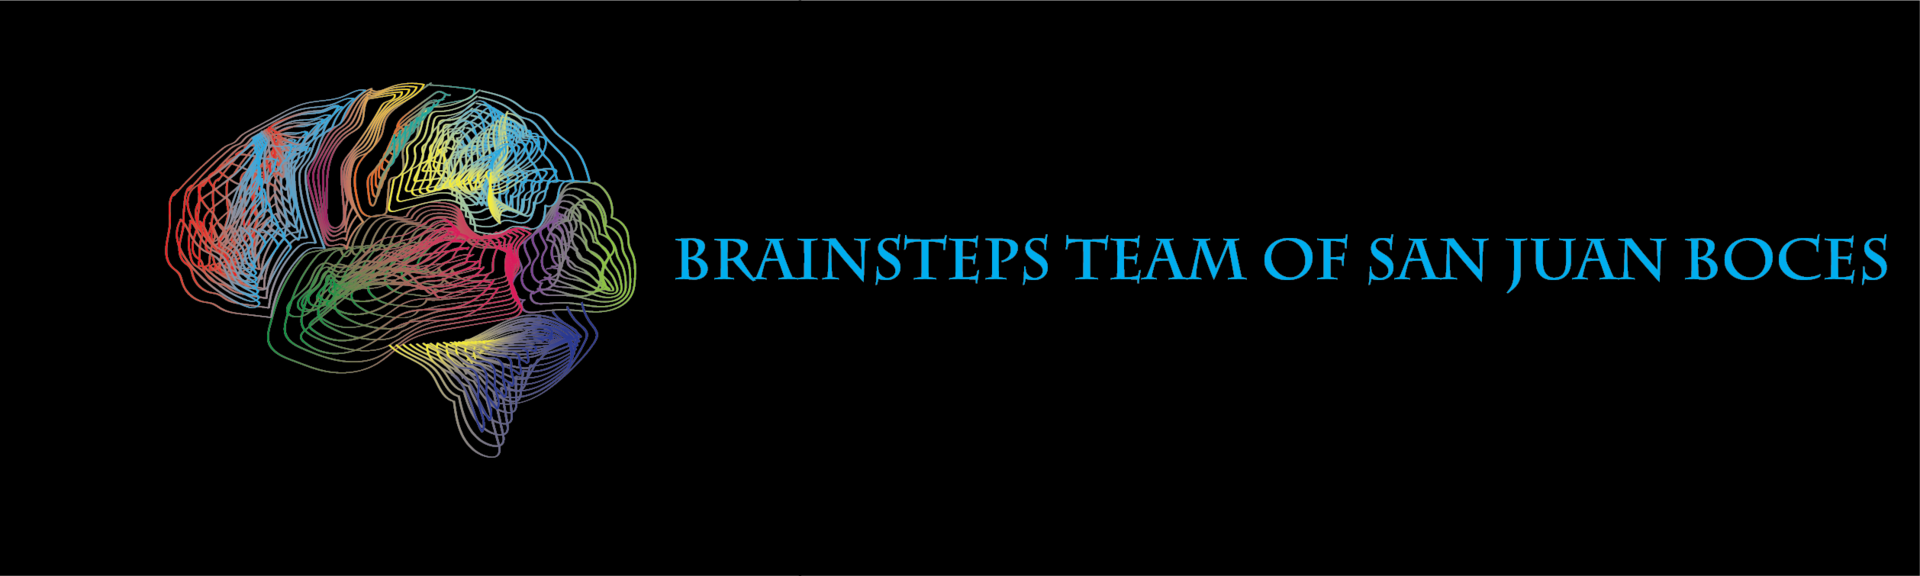 A colorful line drawing of a brain with the text Brainsteps team of San Juan BOCES to the right